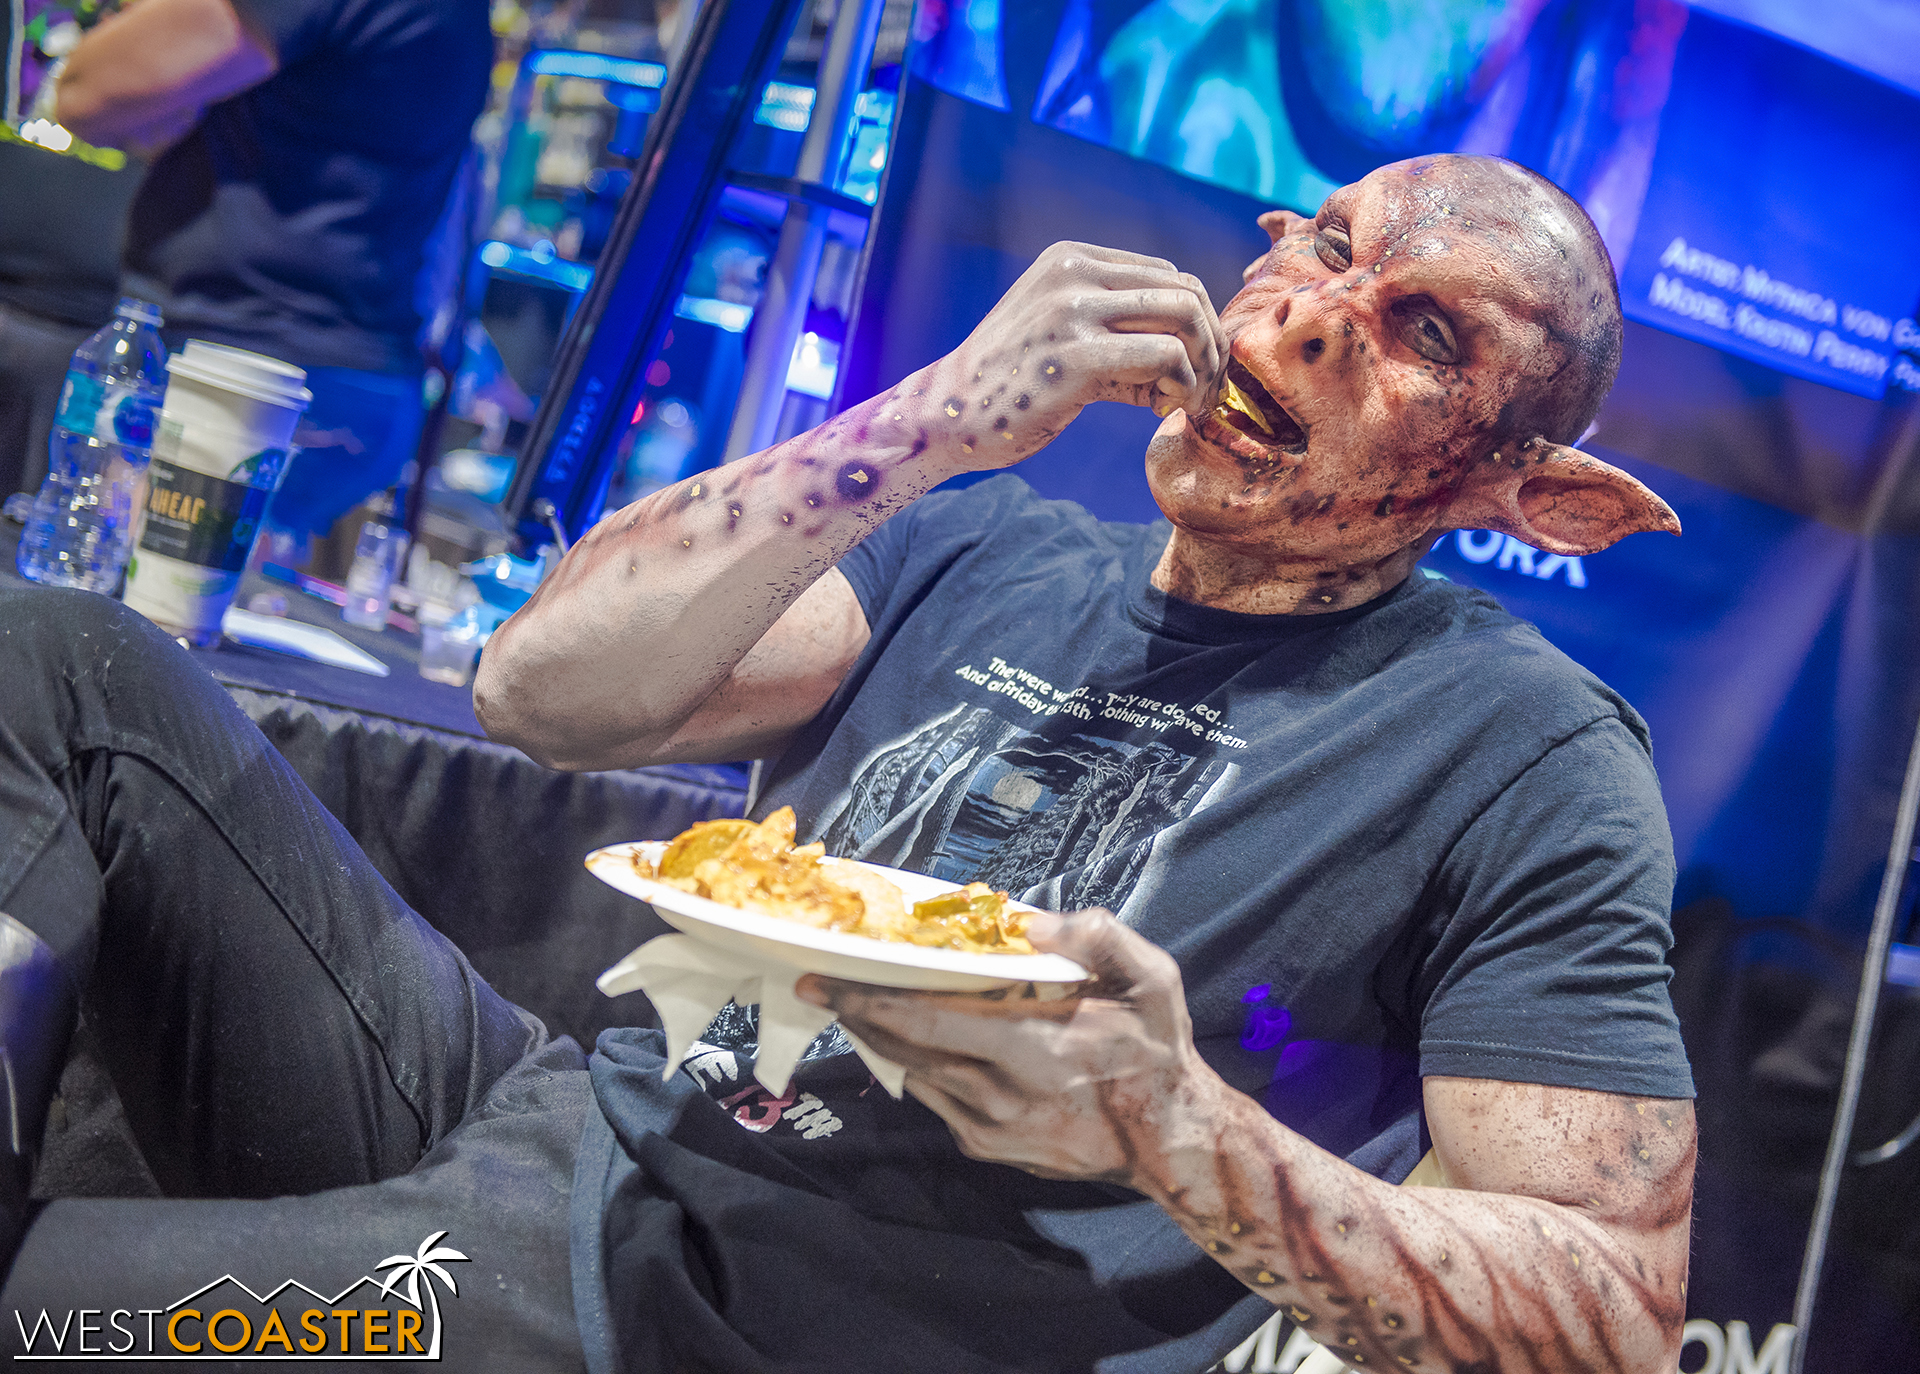 Hey, even a goblin's gotta eat. And not always people!